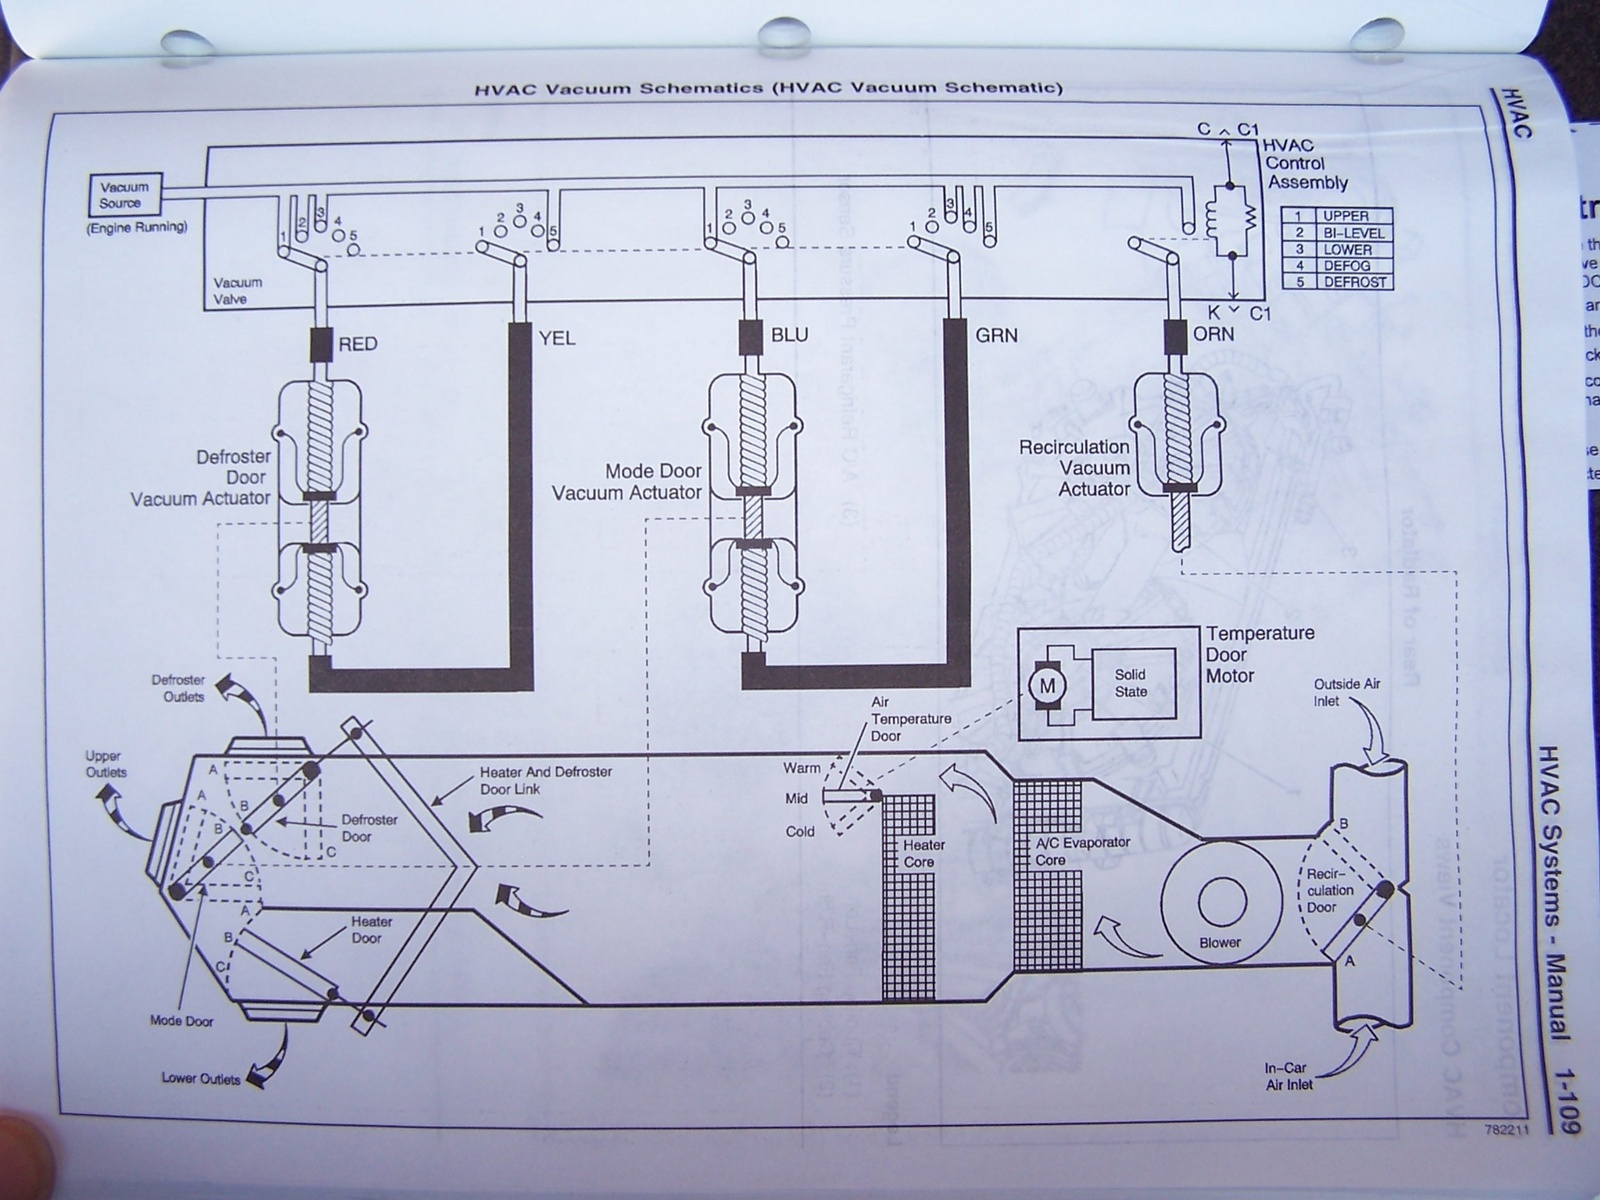 1996 Chevy Blazer Engine Compartment Wiring Diagram Library 2008 Suzuki Forenza Temp My Heater Stopped Blowing Hot Air